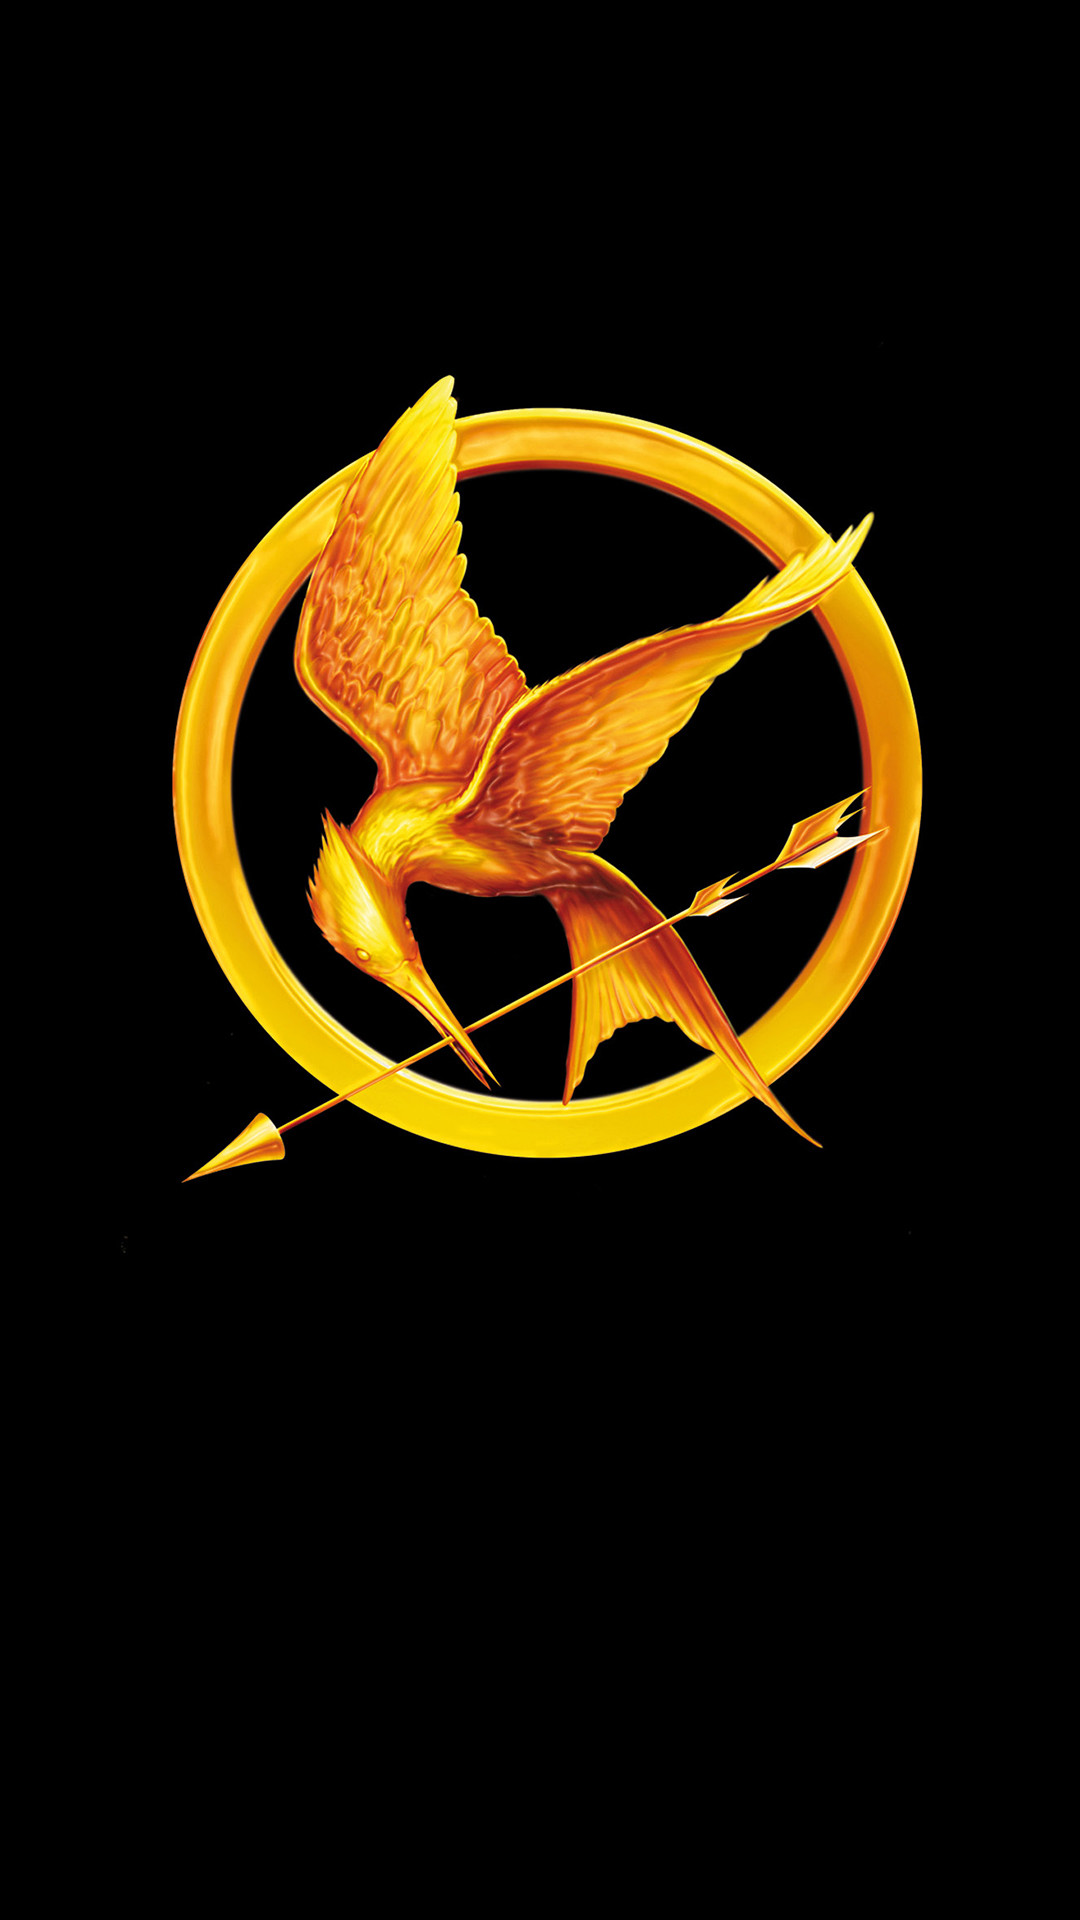 1080x1920 The Hunger Games Catching Fire